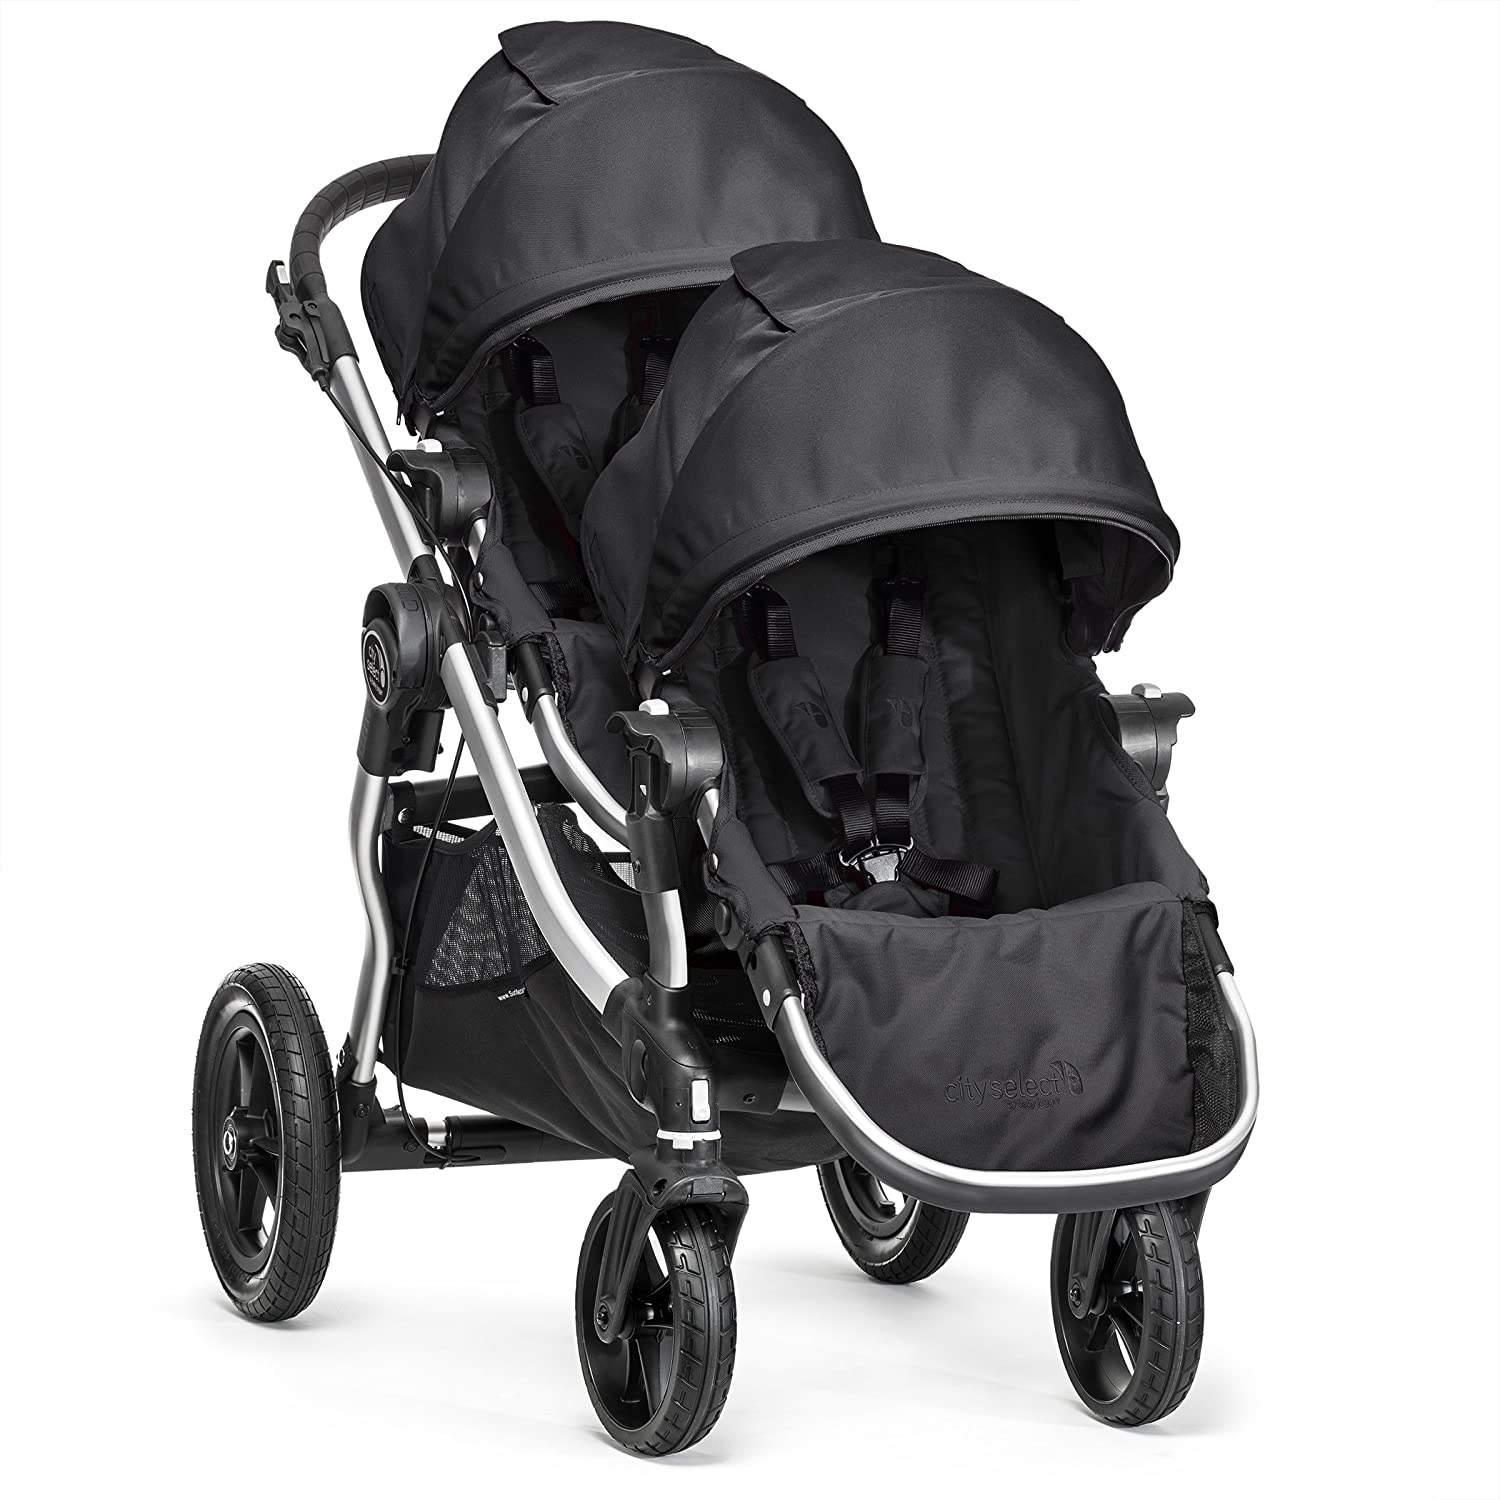 Amazon.com : Baby Jogger 2015 City Select with 2nd Seat, Onyx : Baby